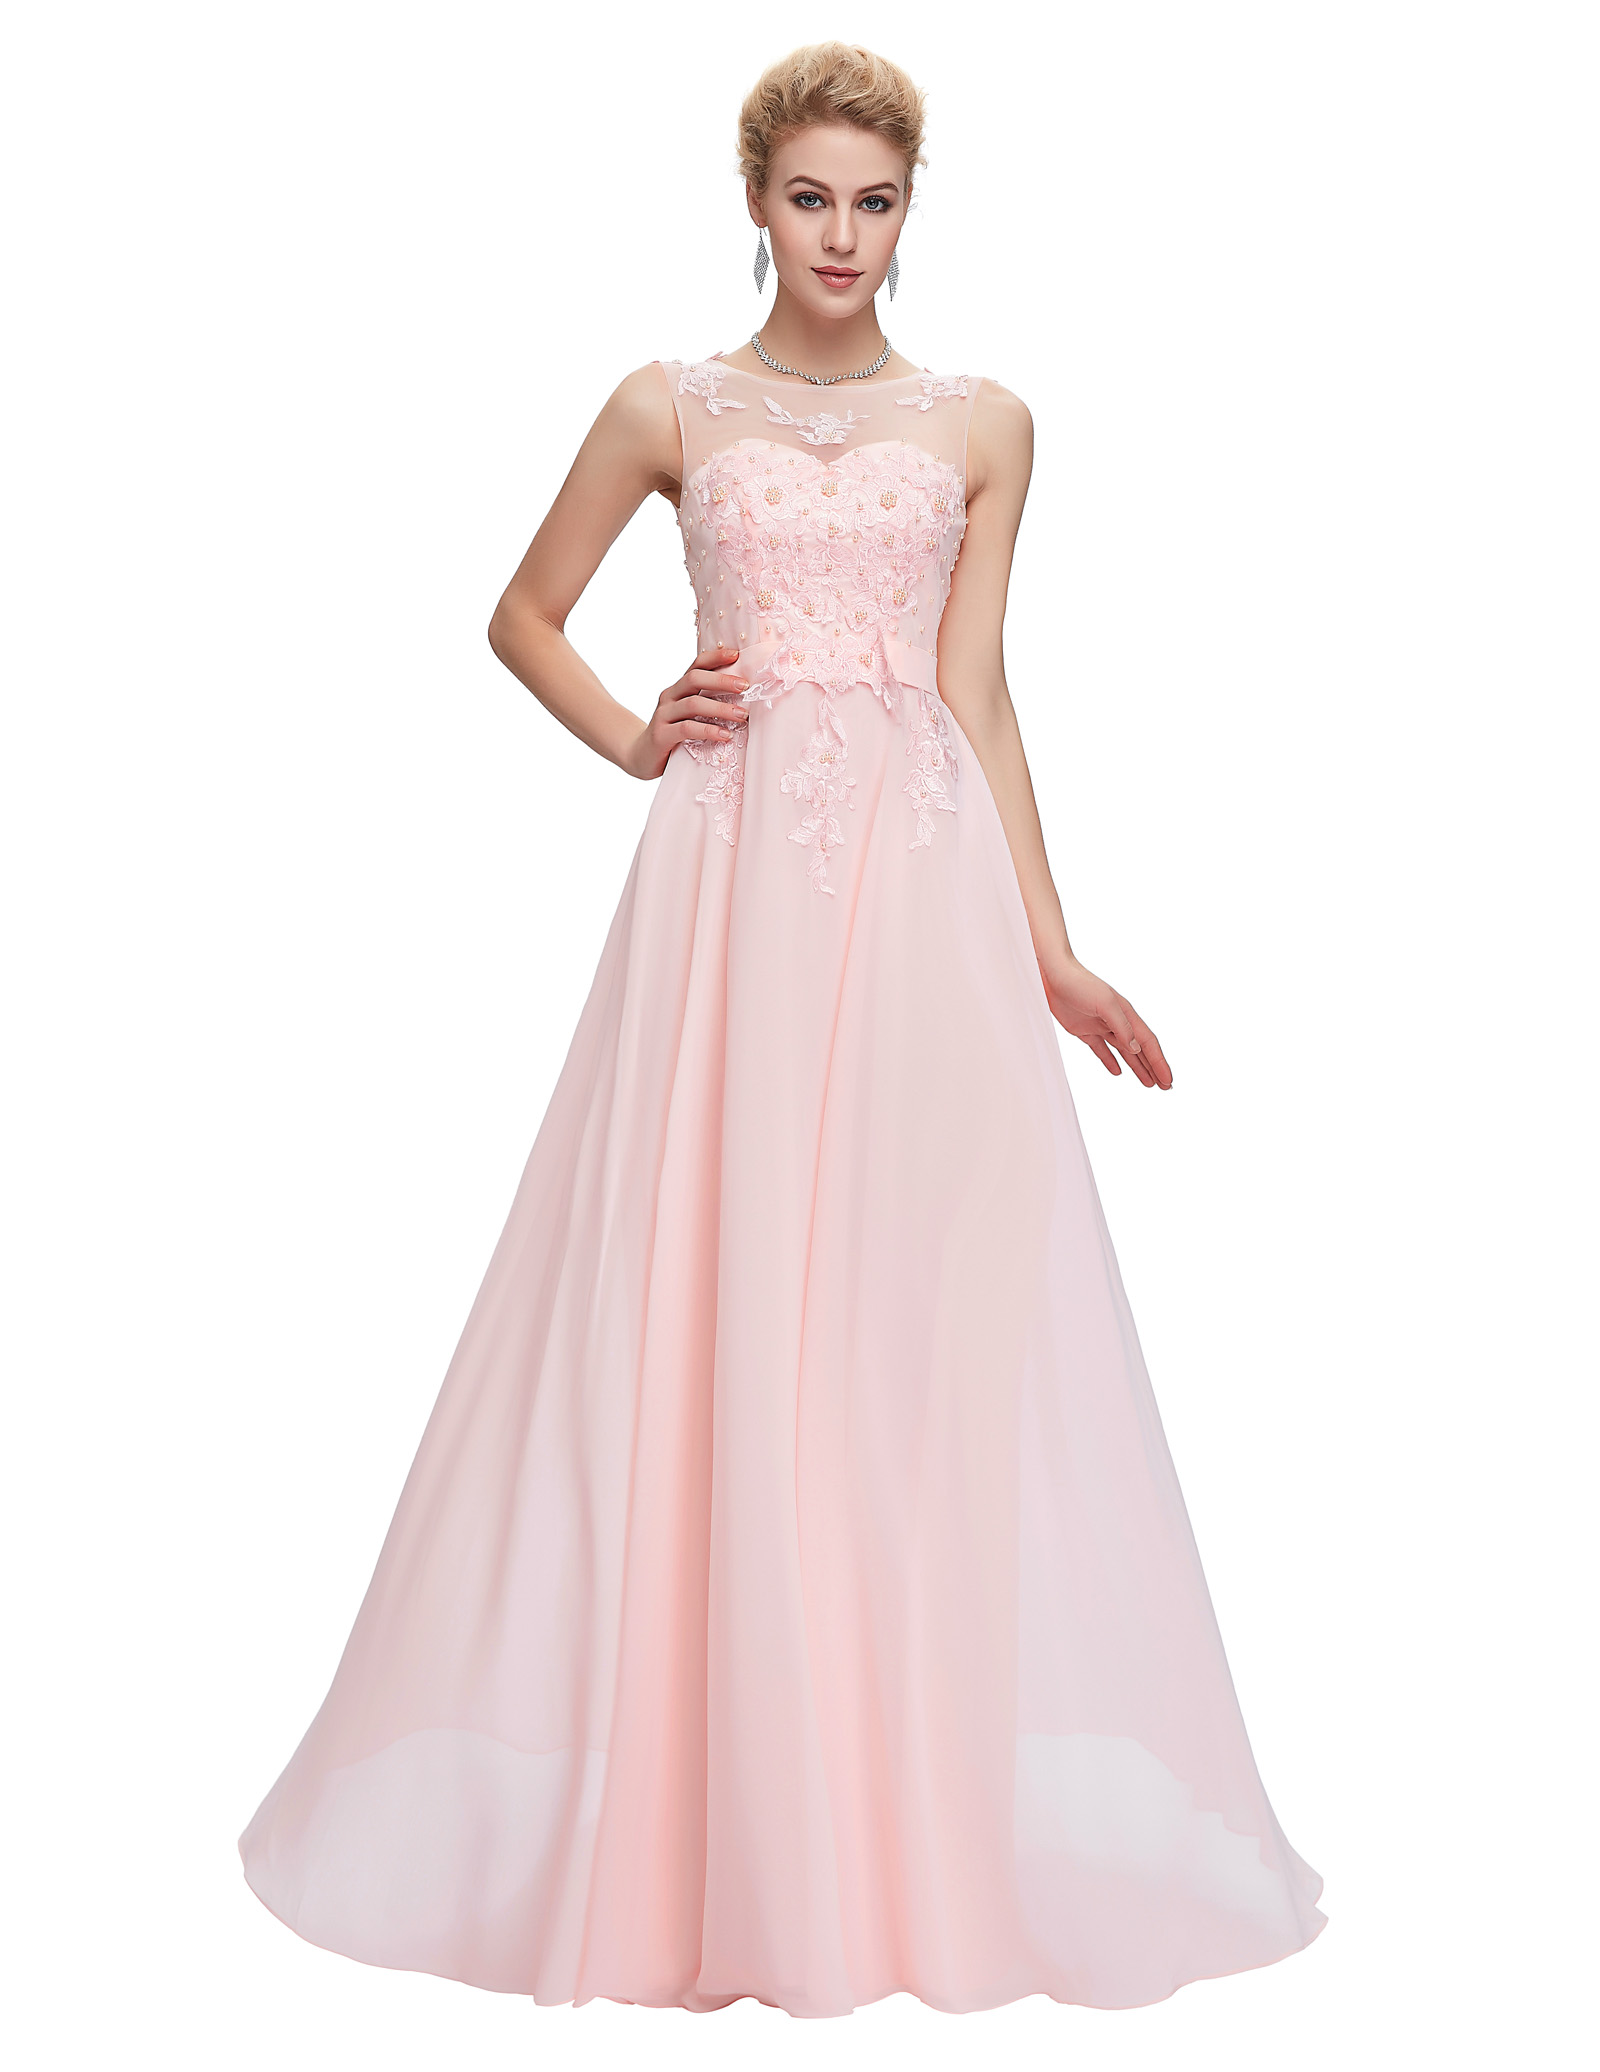 Grace karin light pink bridesmaid dresses 2017 blue red black aeproducttsubject ombrellifo Gallery